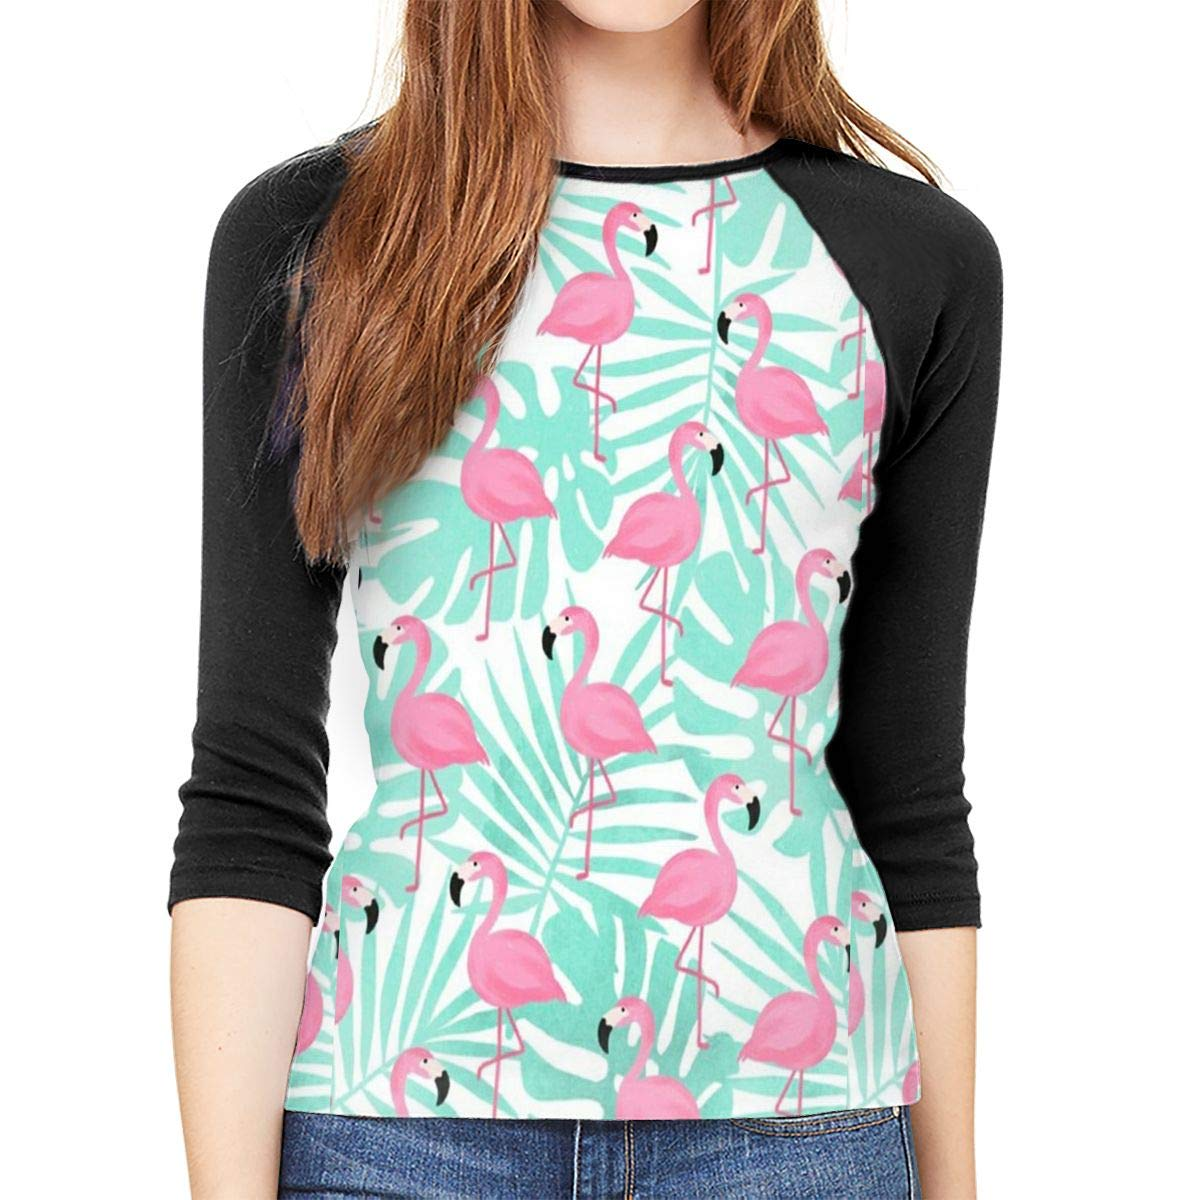 SHDFhgHGF Pink Flamingos Womens 3//4 Sleeve Casual Scoop Neck Tops Tee